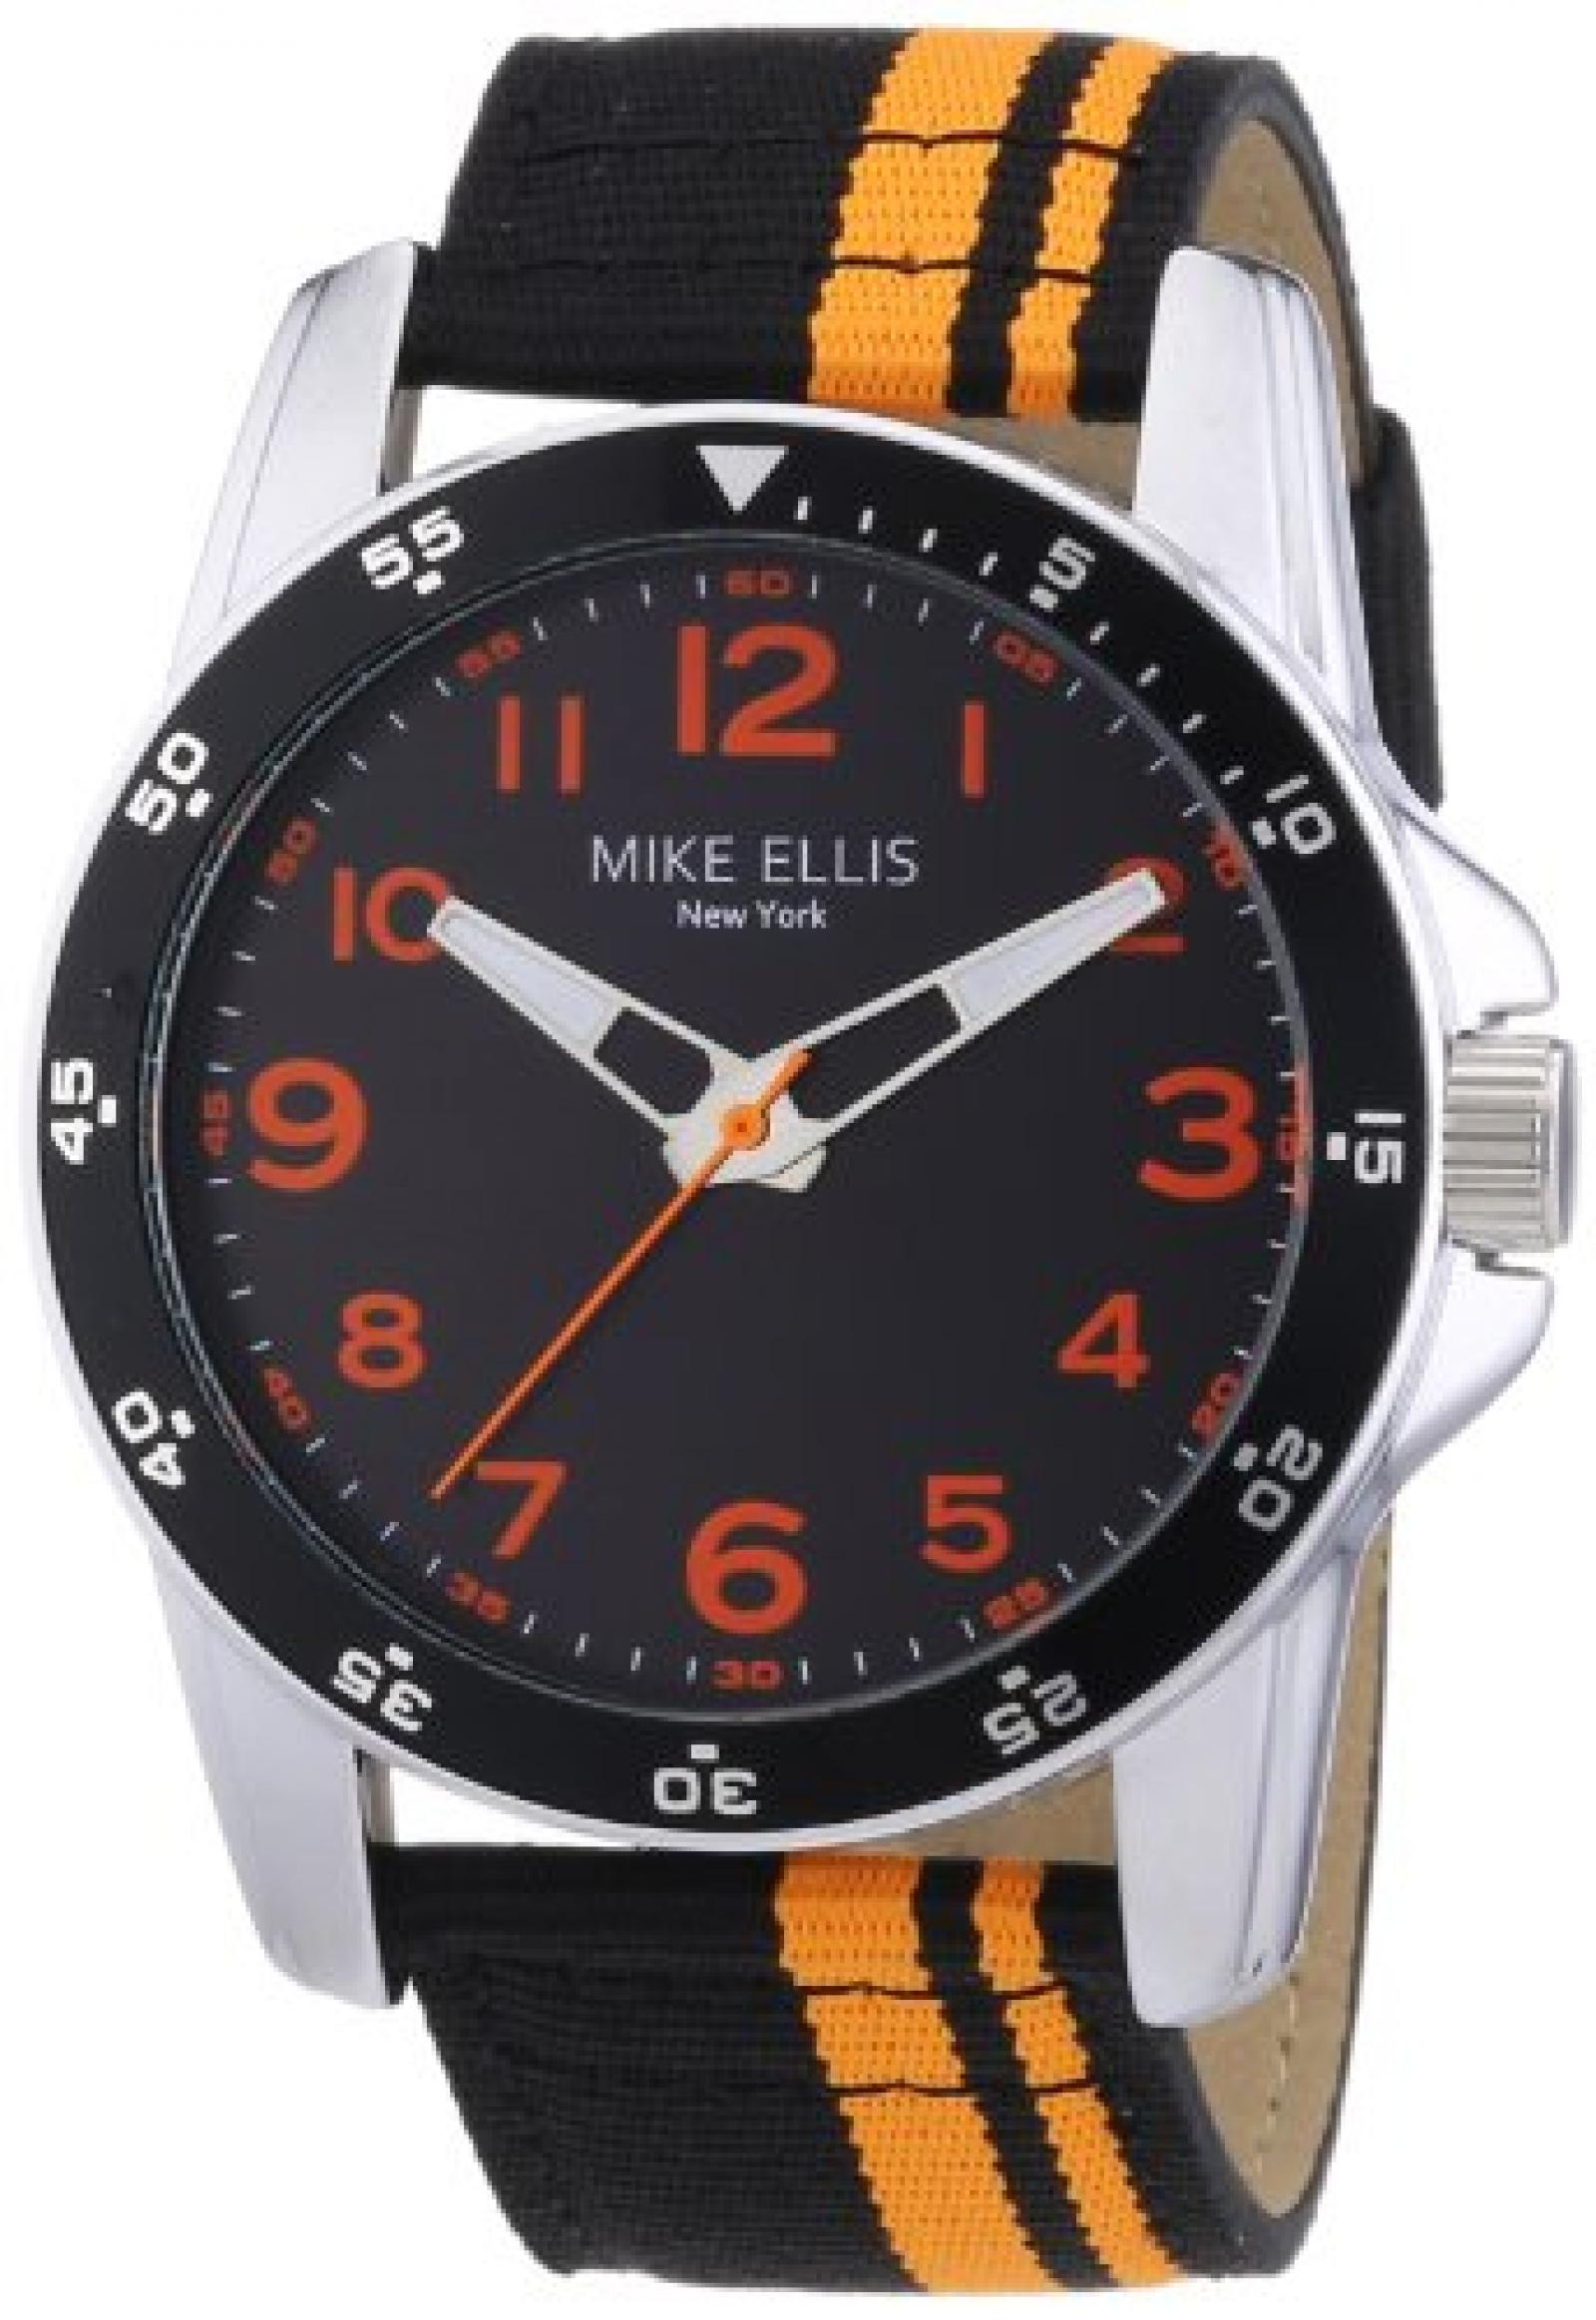 Mike Ellis New York Herren-Armbanduhr XL Analog Quarz Textil M3145/3